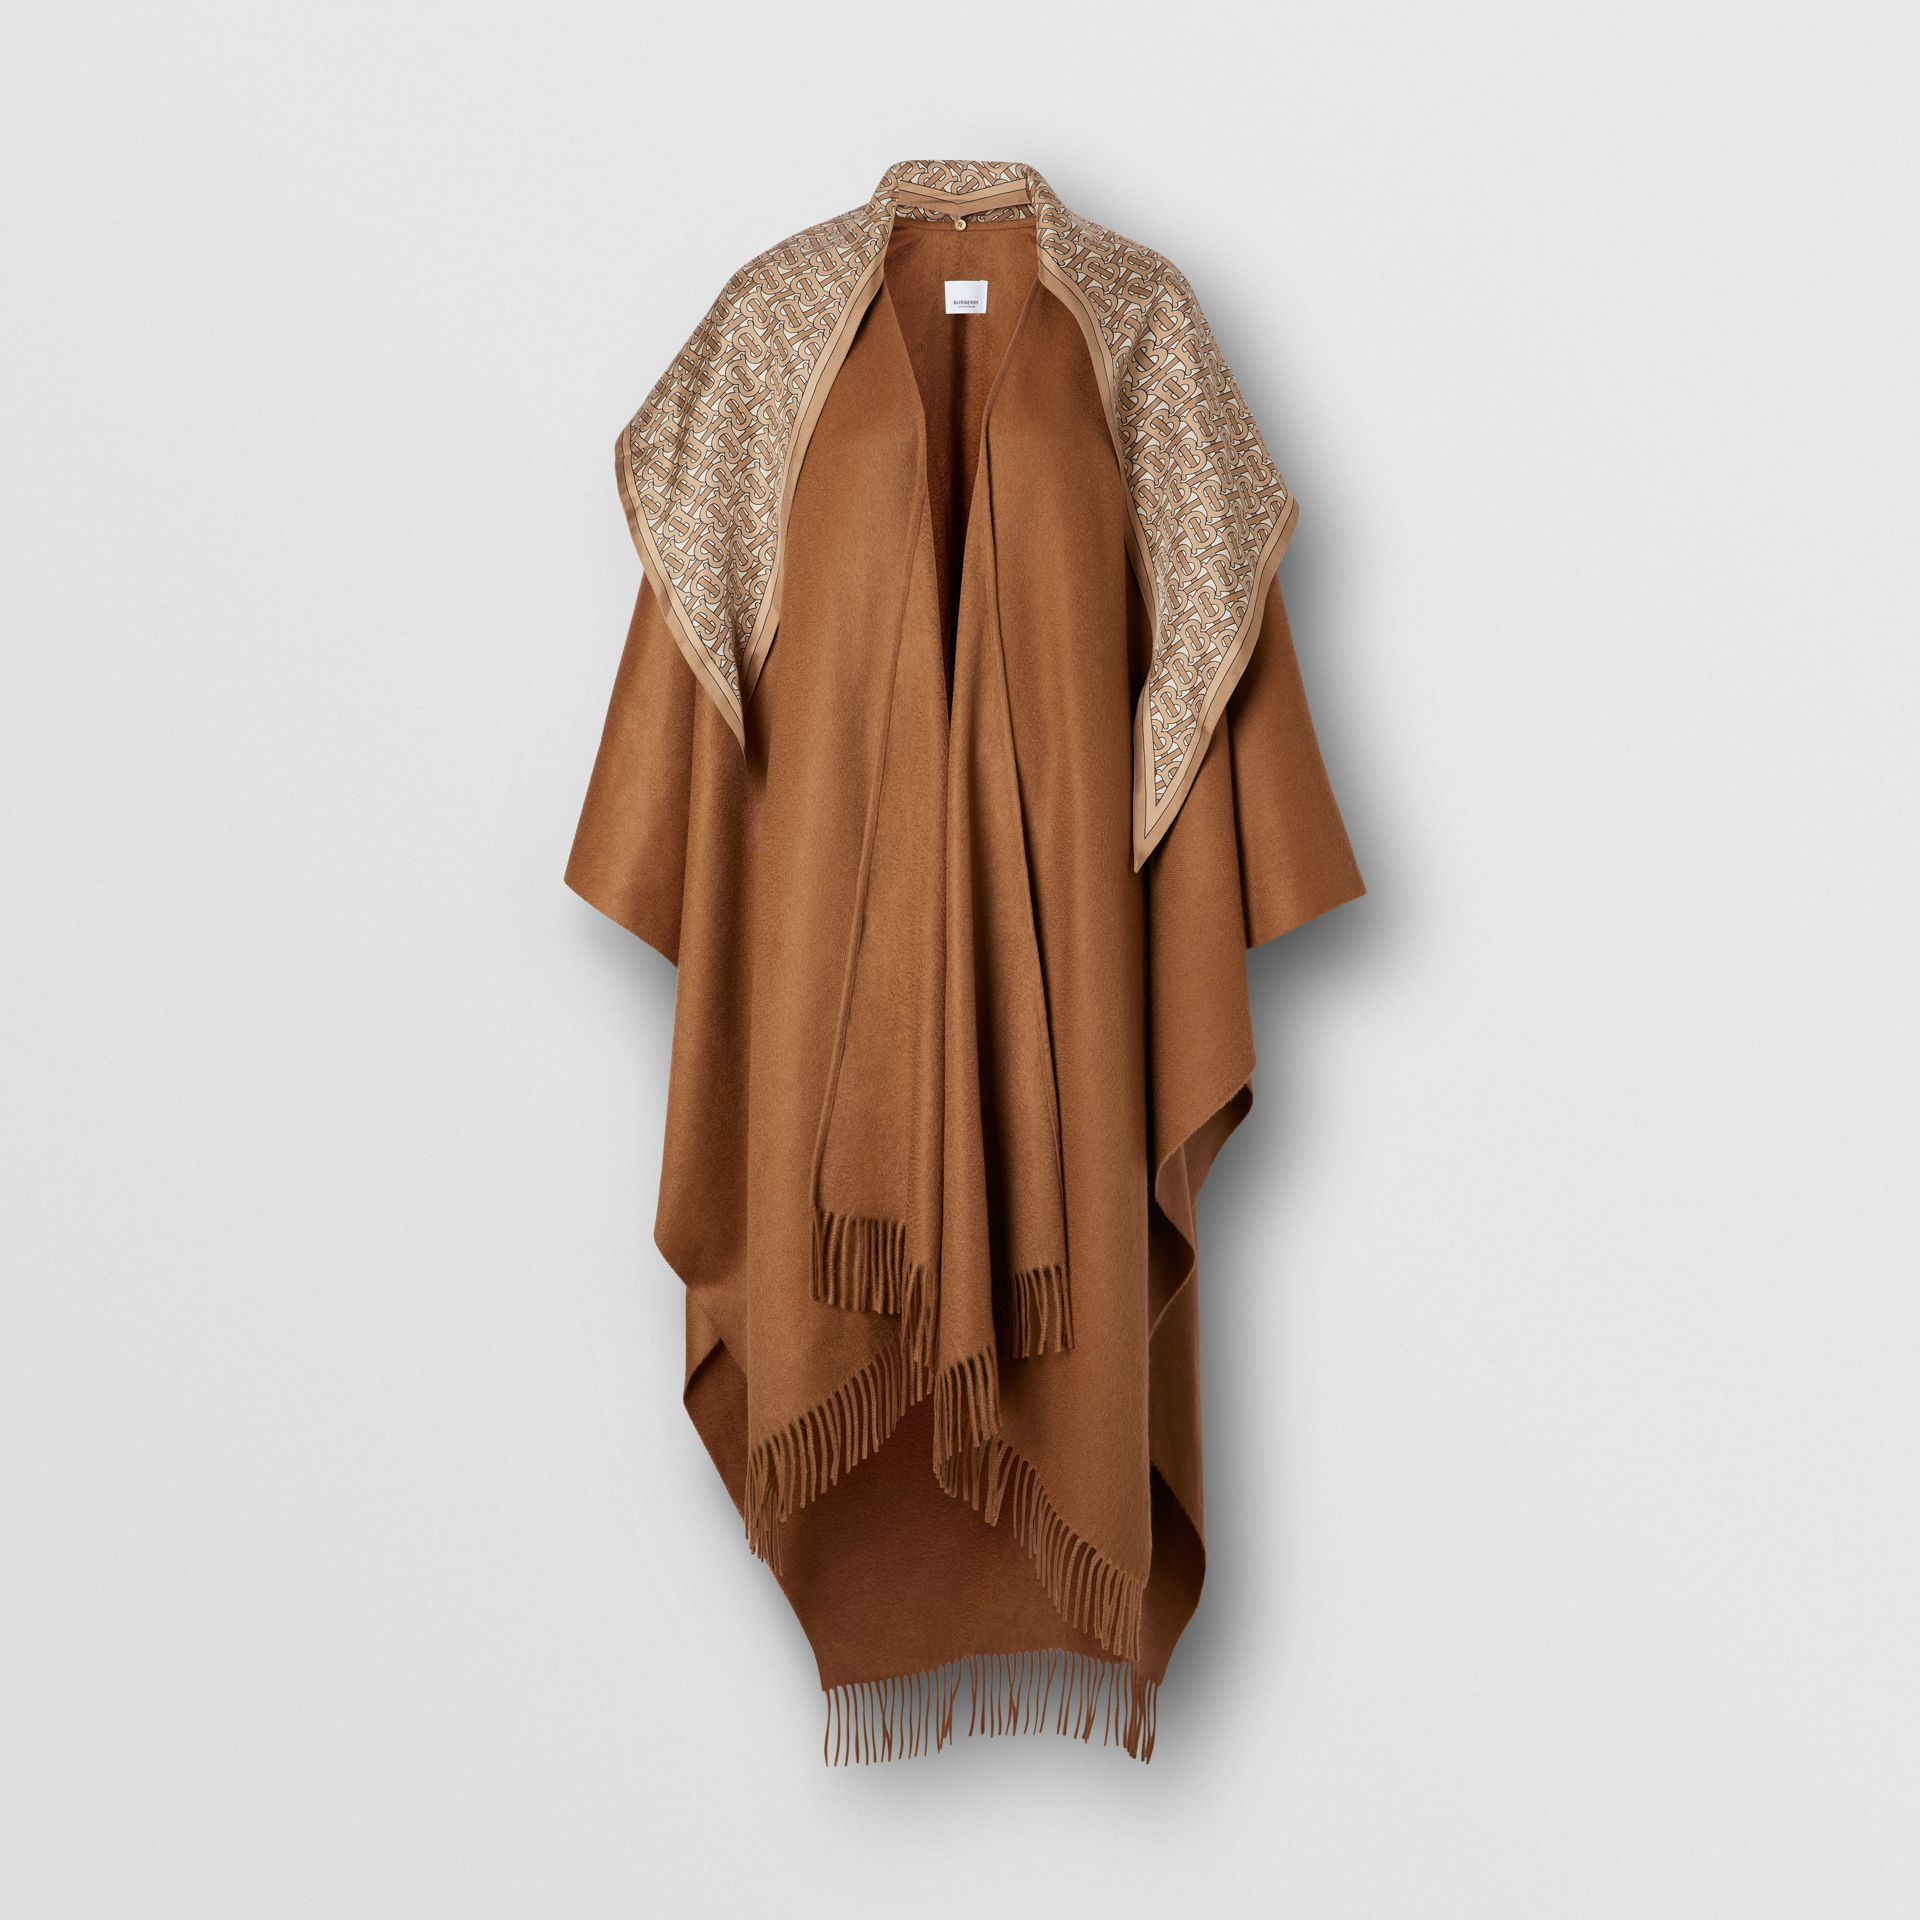 Detachable Monogram Print Scarf Cashmere Cape in Fern - Women | Burberry Australia - gallery image 3